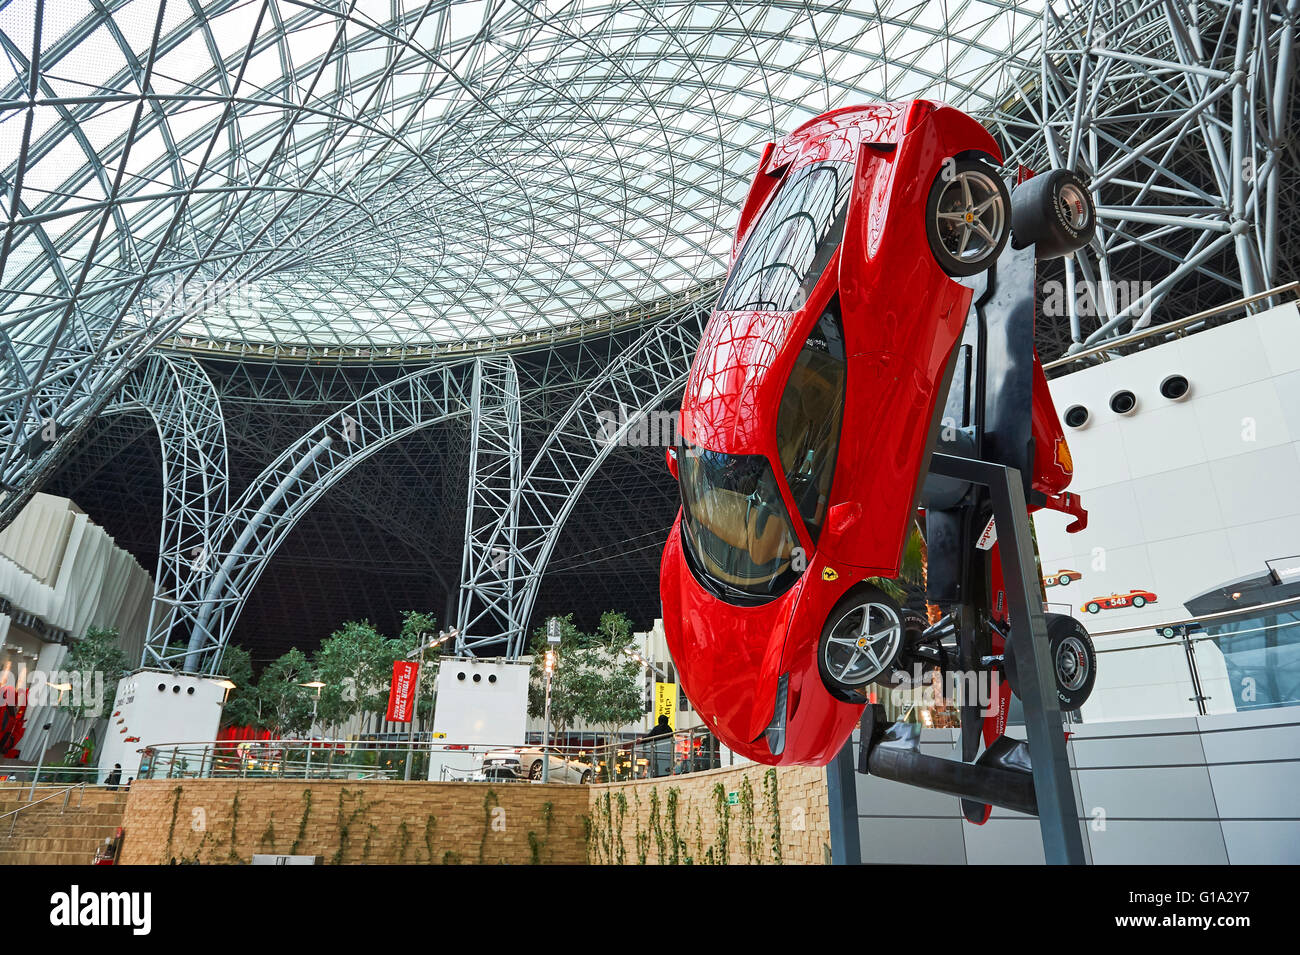 Ferrari World Abu Dhabi Stock Photos & Ferrari World Abu Dhabi Stock